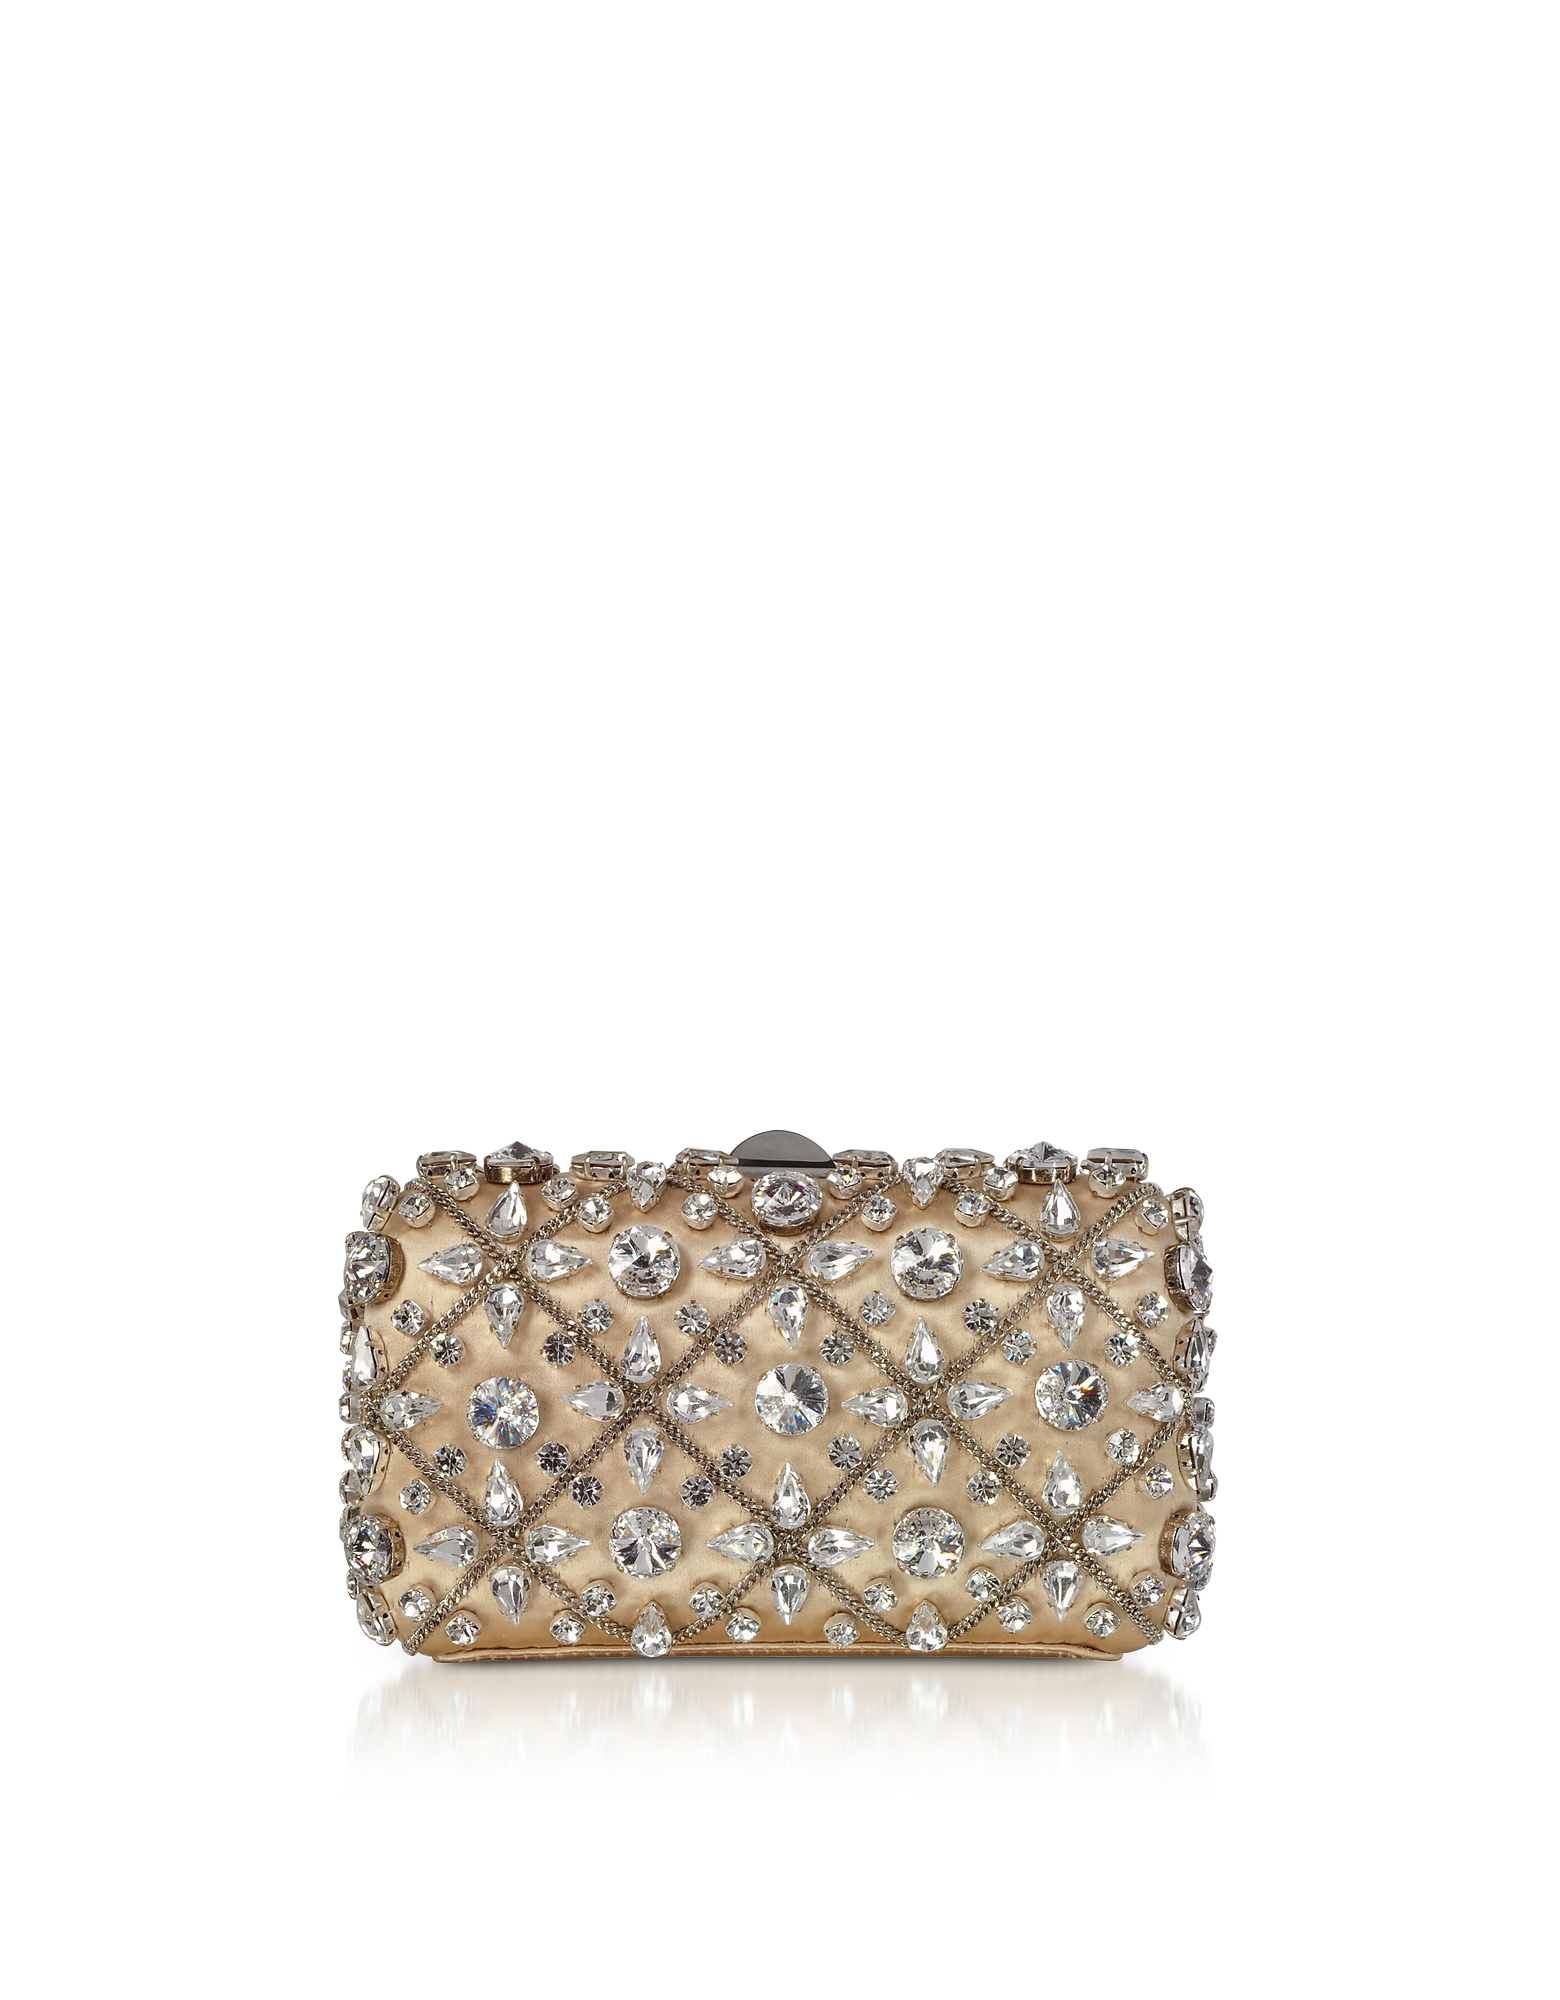 Light Gold Satin Tresor Clutch w/Crystals and Chain